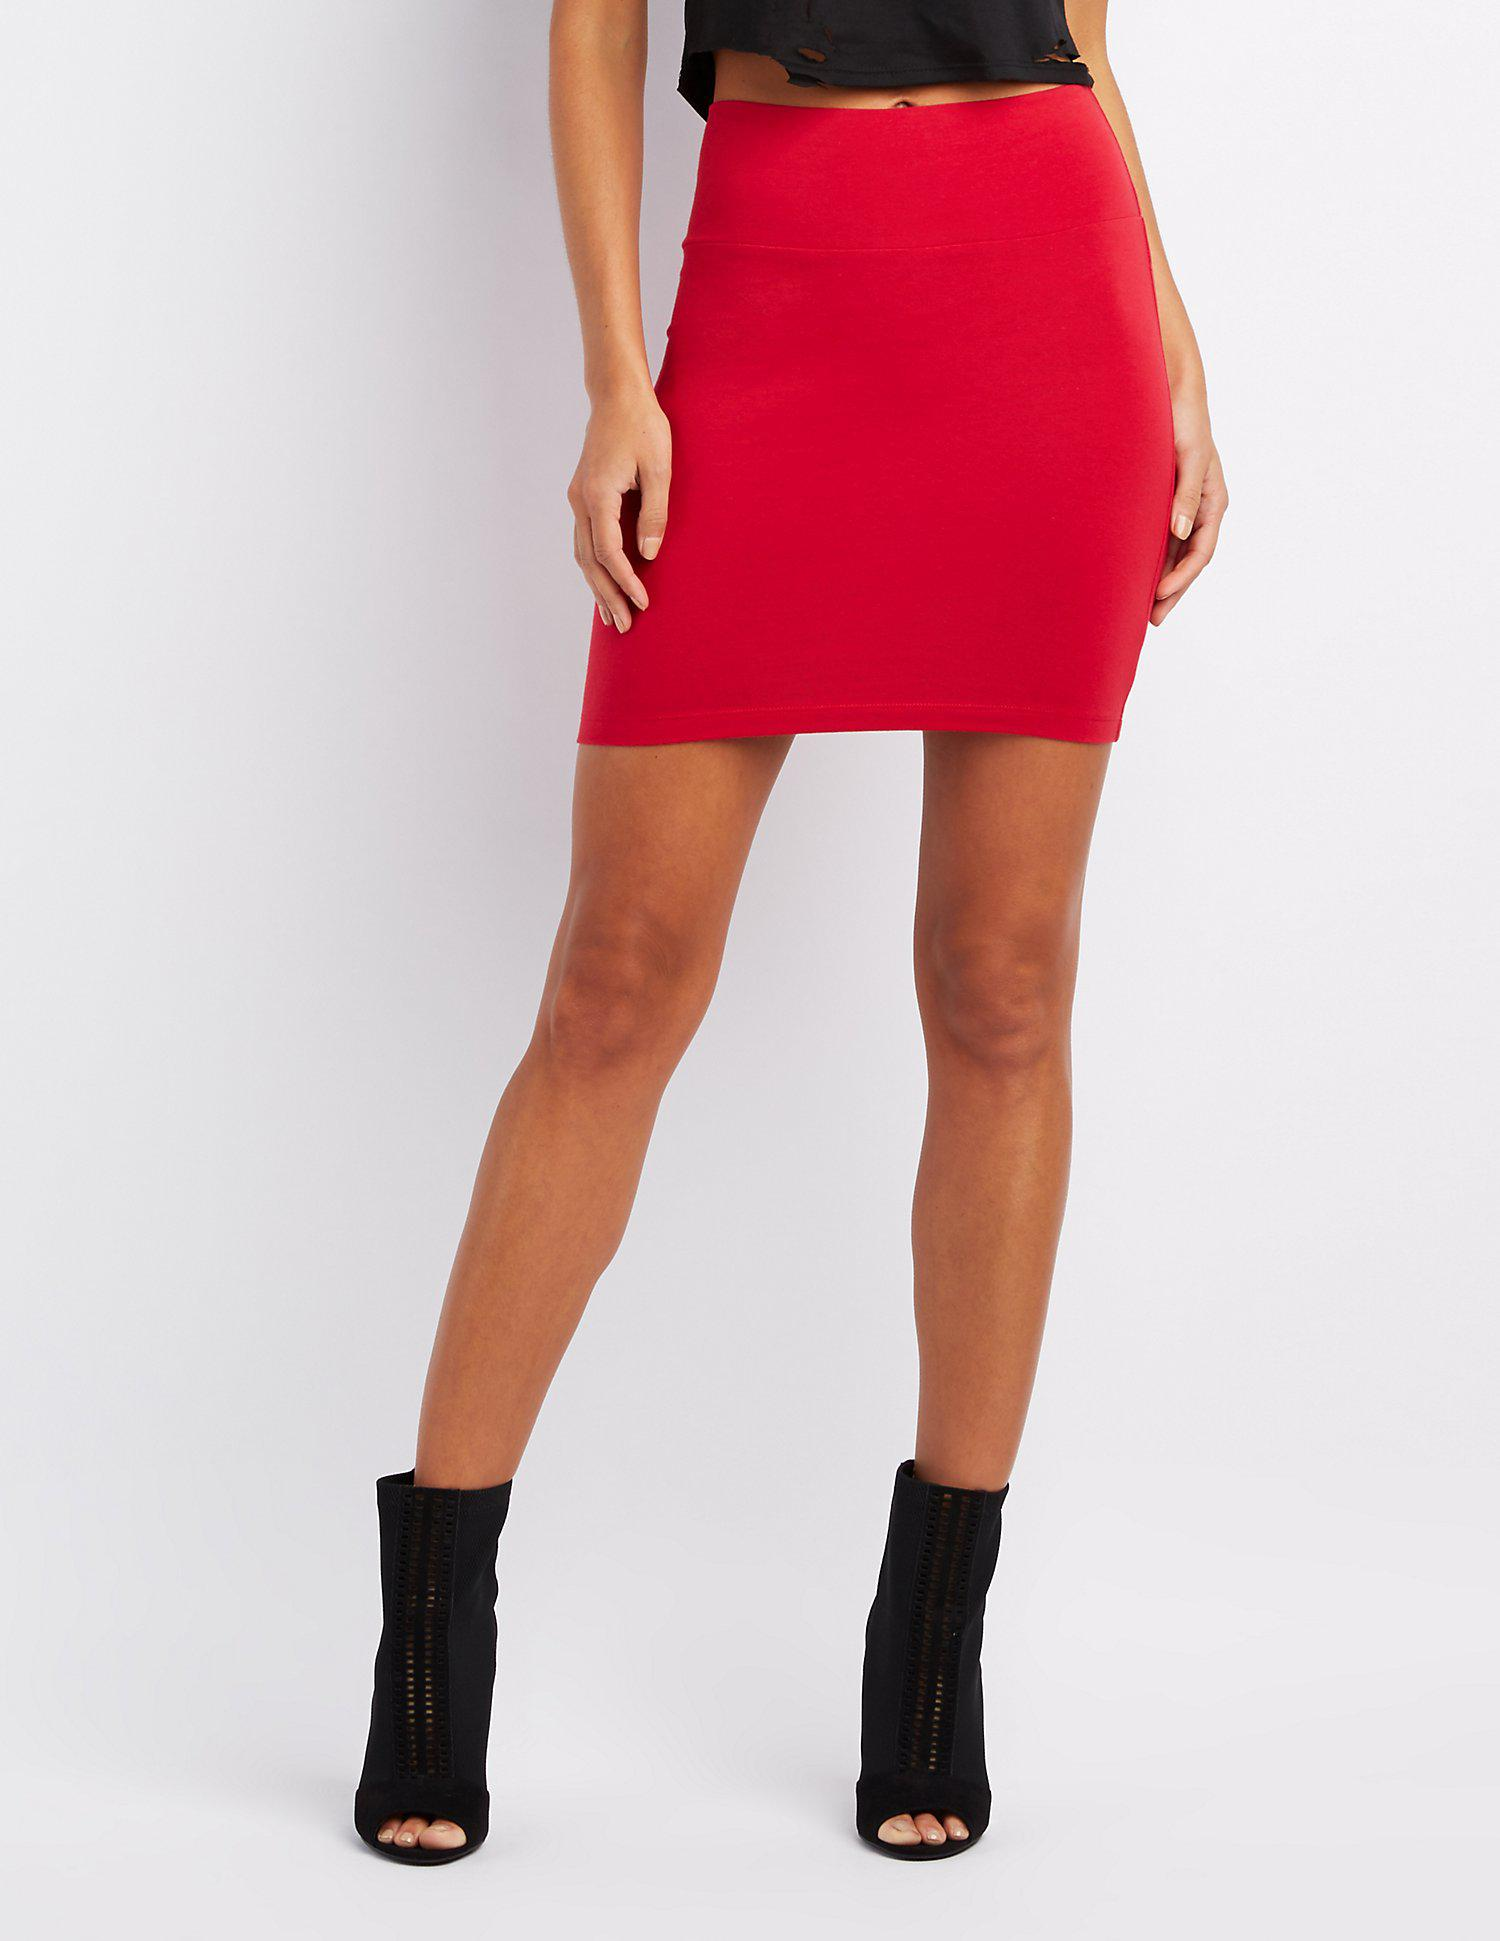 124c33f30 Lyst - Charlotte Russe Bodycon Mini Skirt in Red - Save 25%